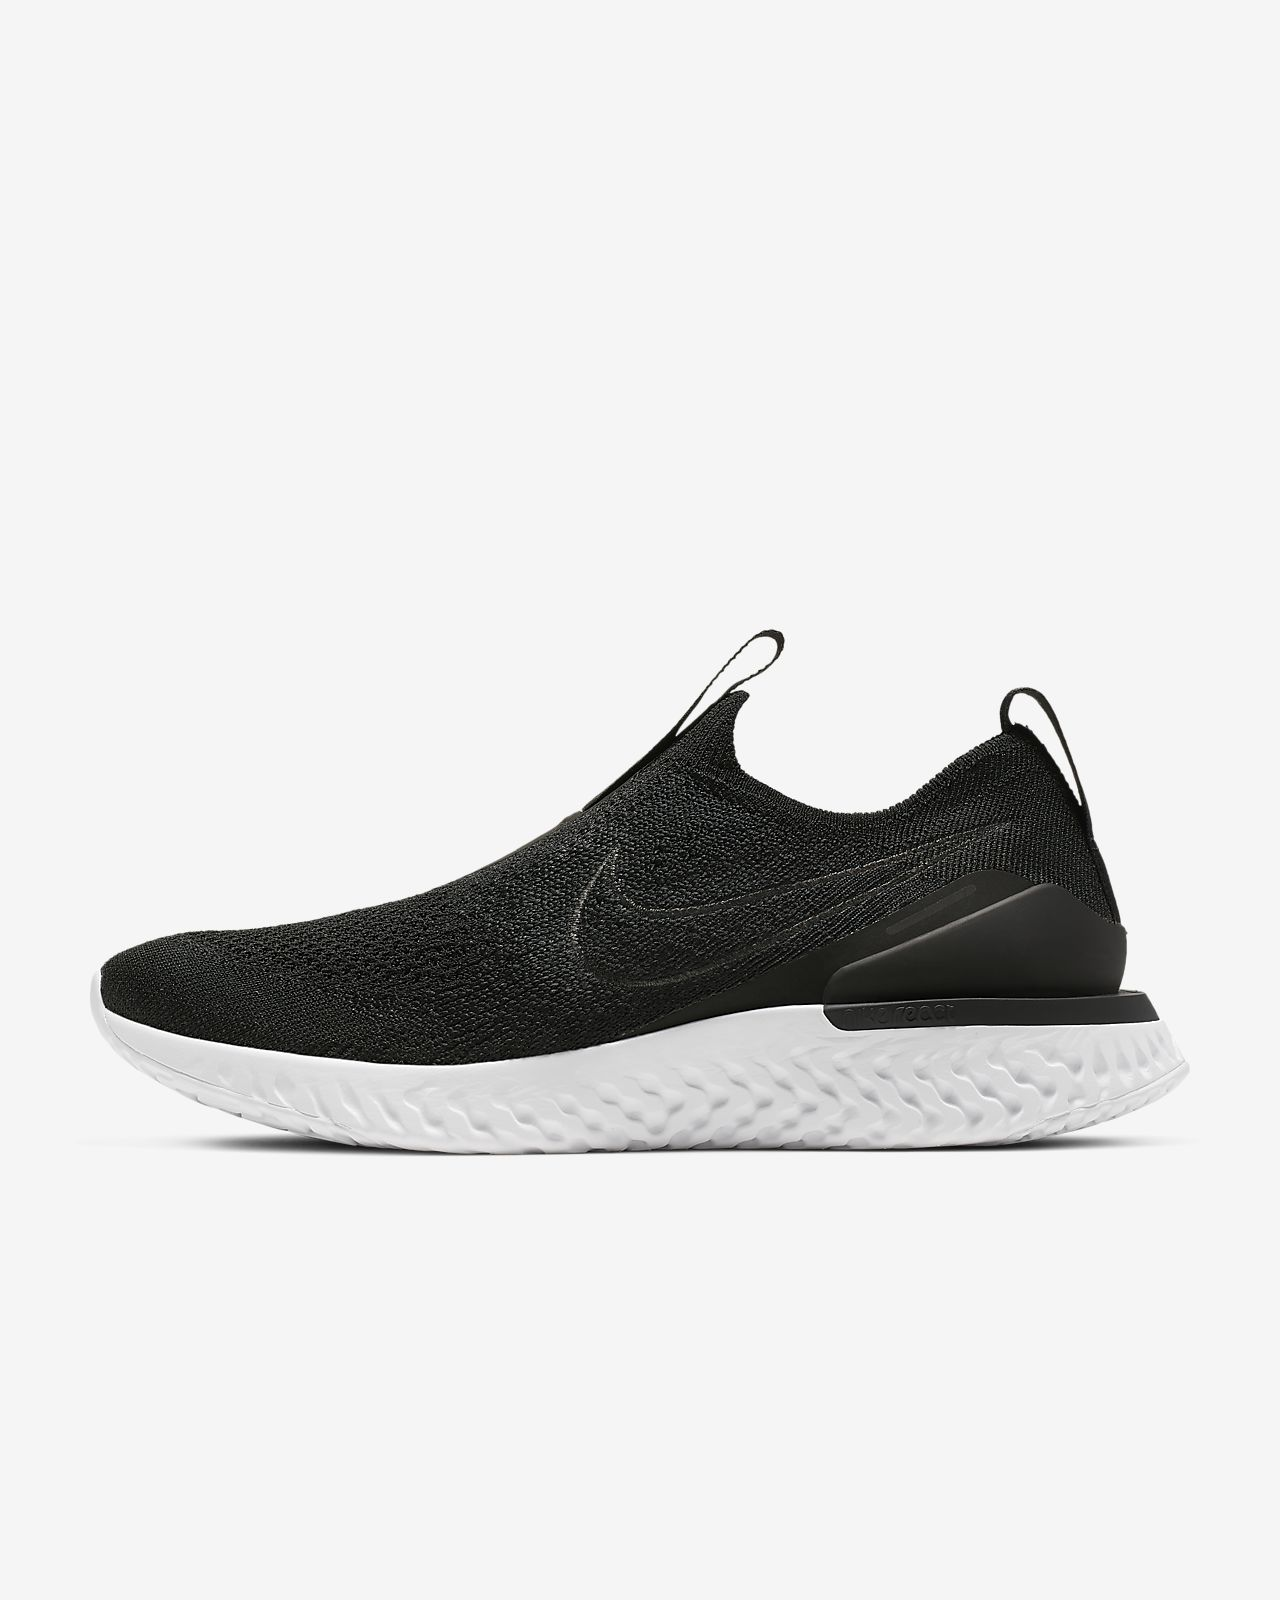 Damskie buty do biegania Nike Epic Phantom React Flyknit